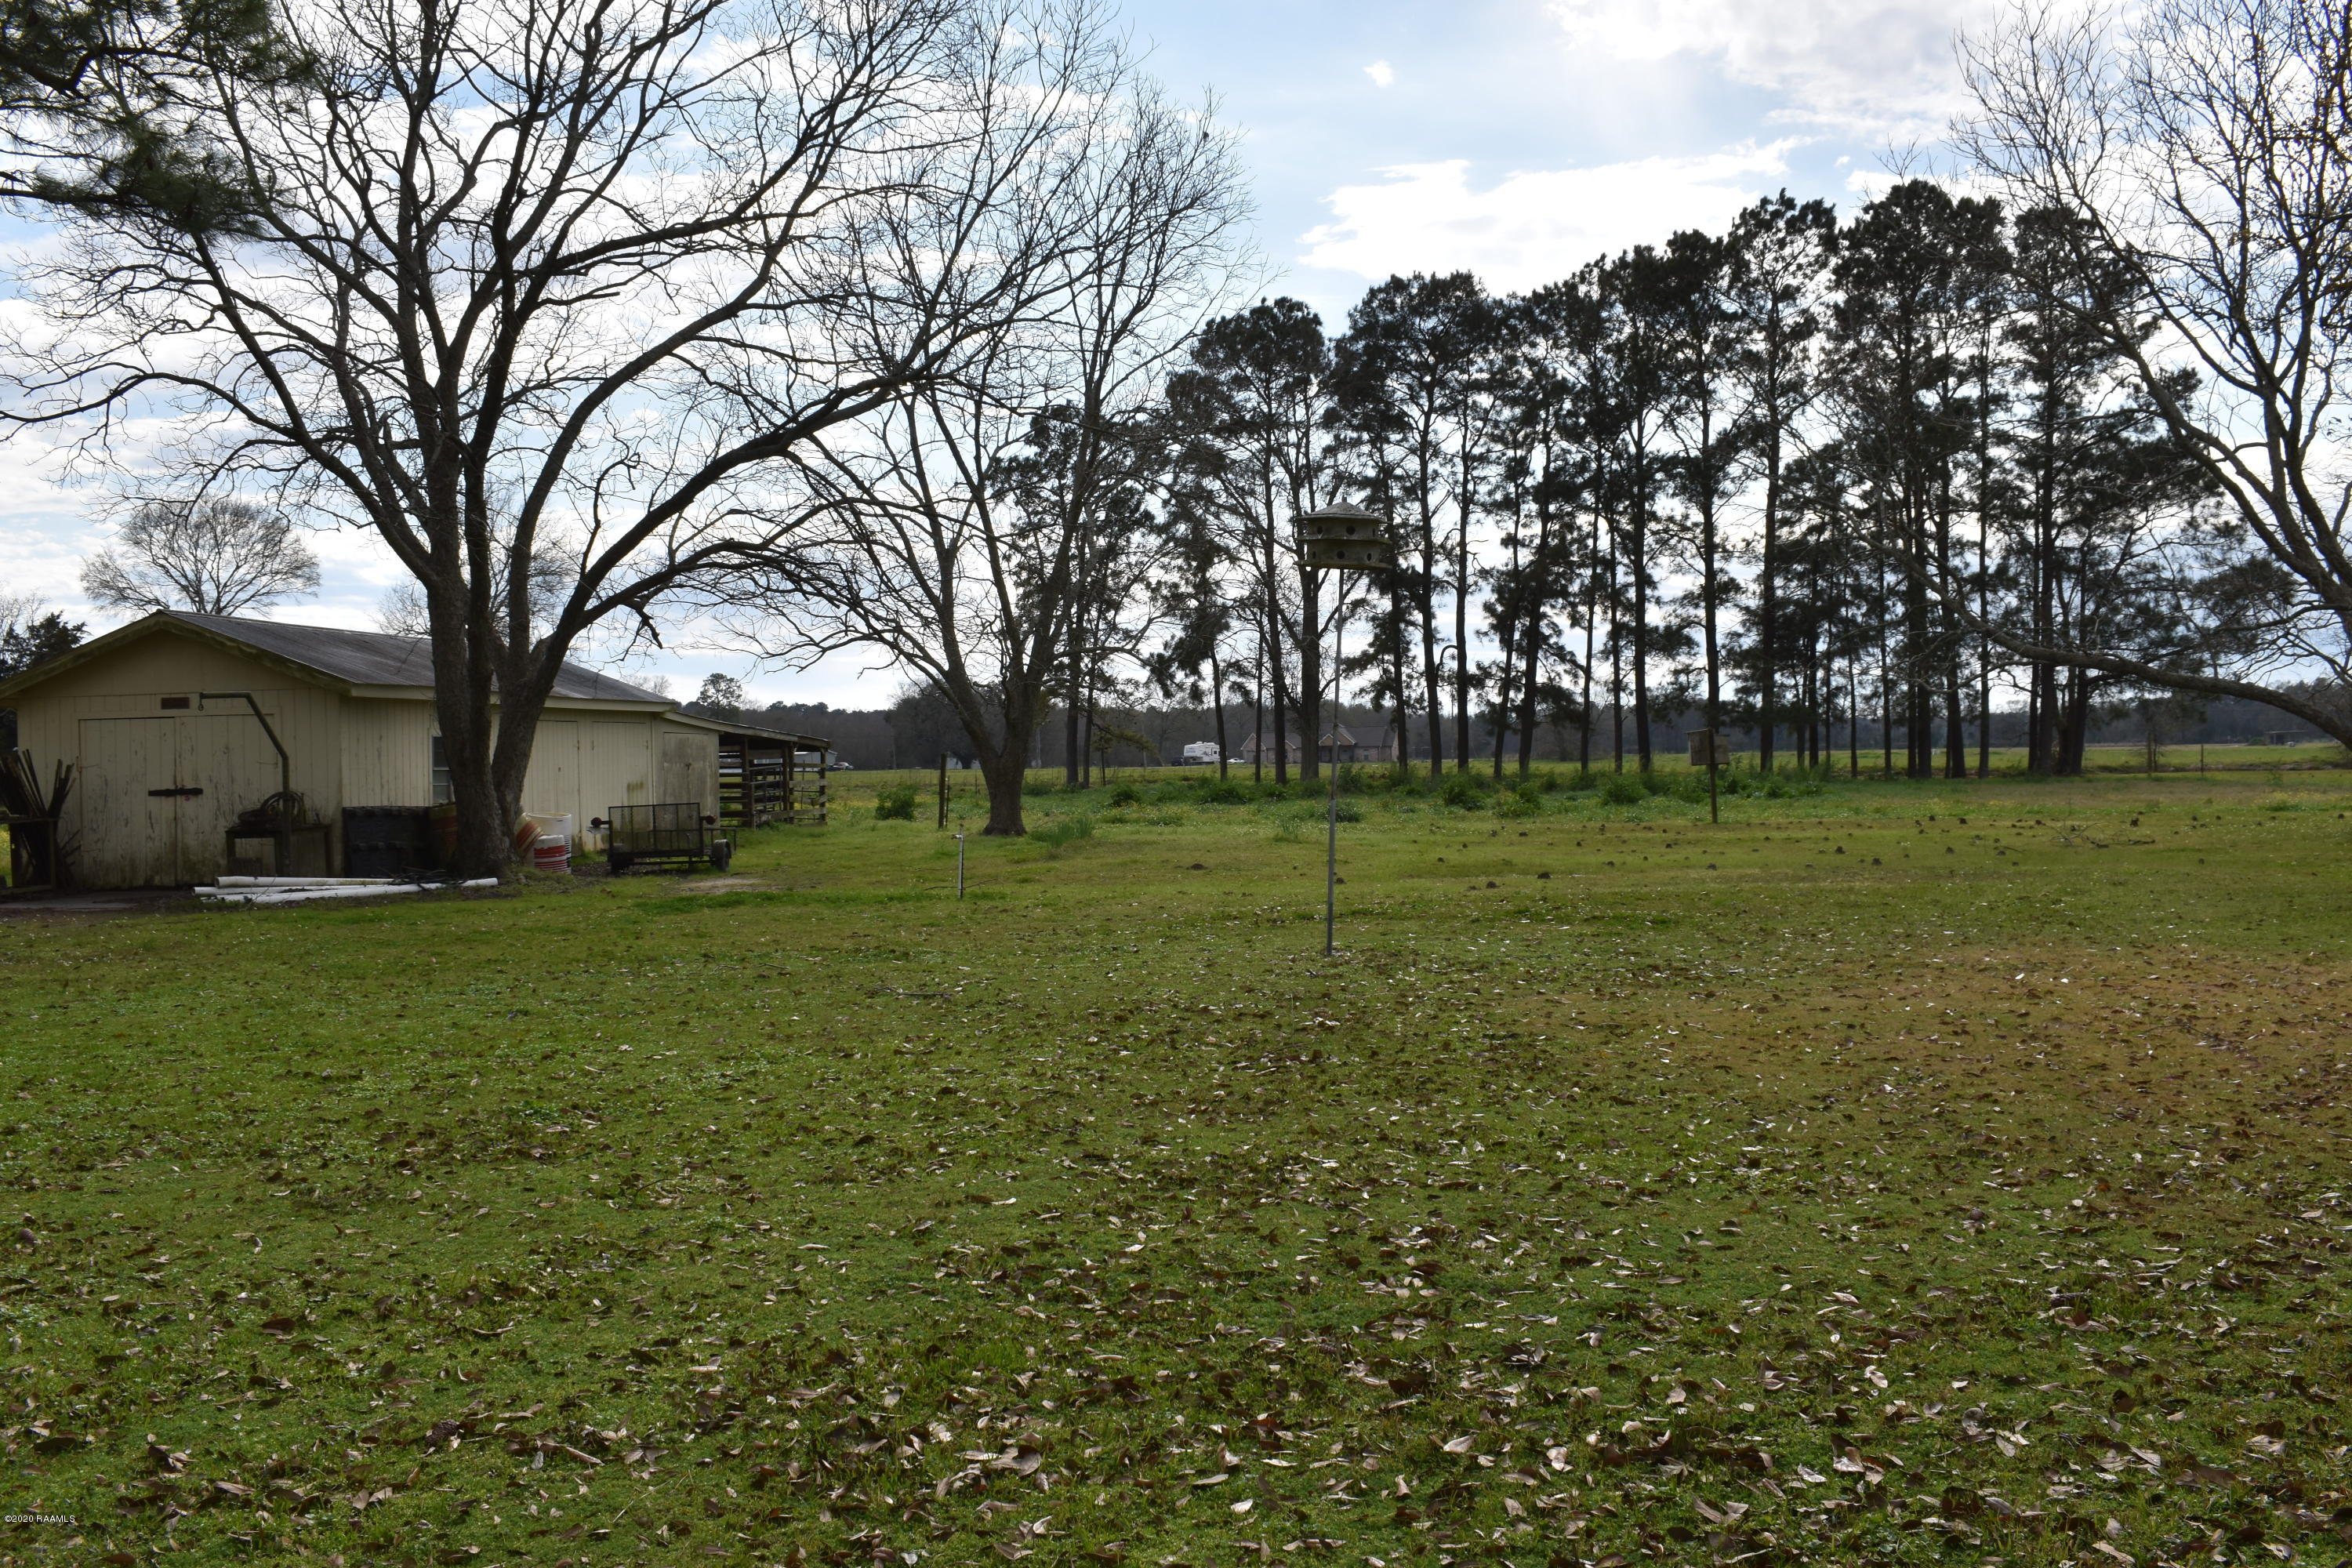 655 Saddle Drive, Eunice, LA 70535 Photo #20